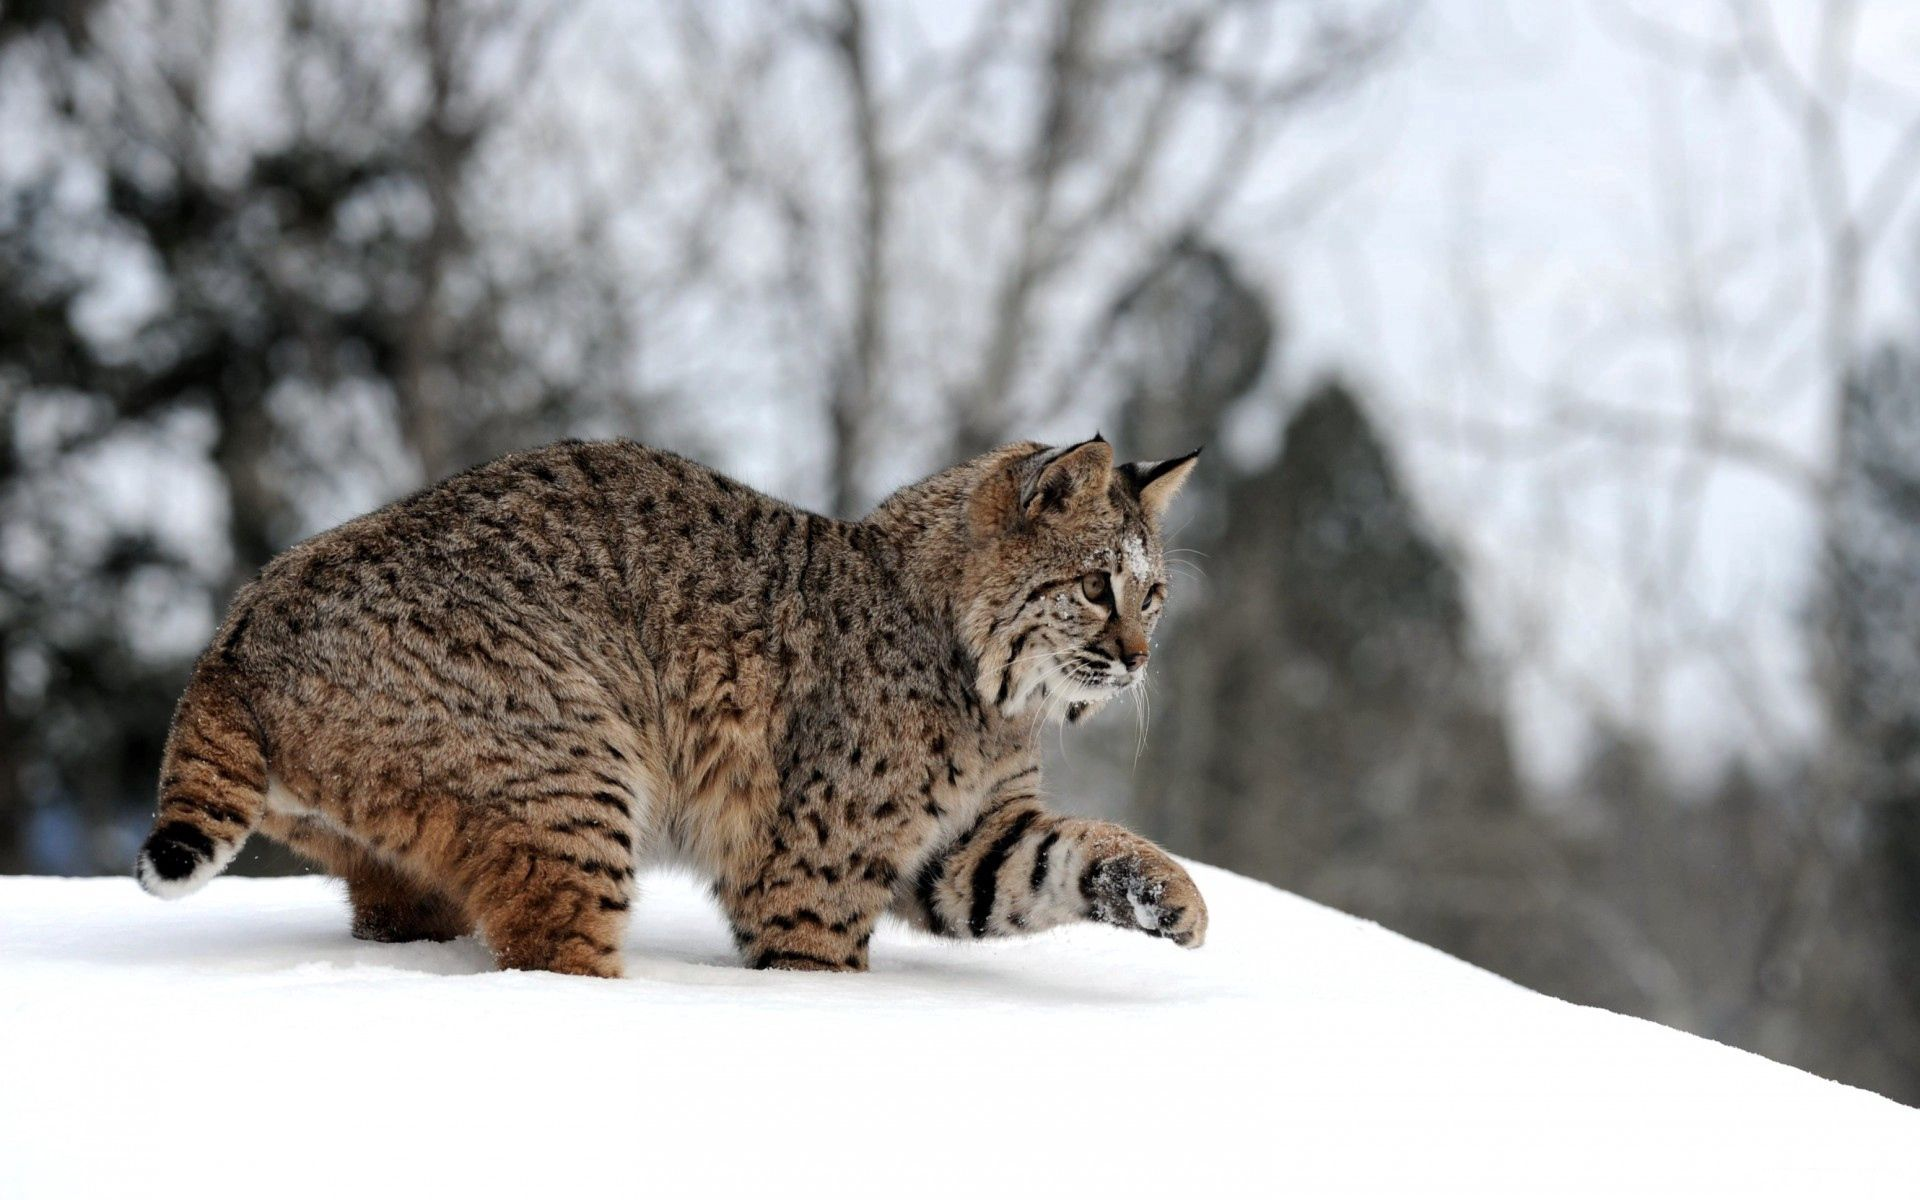 82698 download wallpaper Animals, Winter, Snow, Iris, Forest, Stroll, Playful screensavers and pictures for free